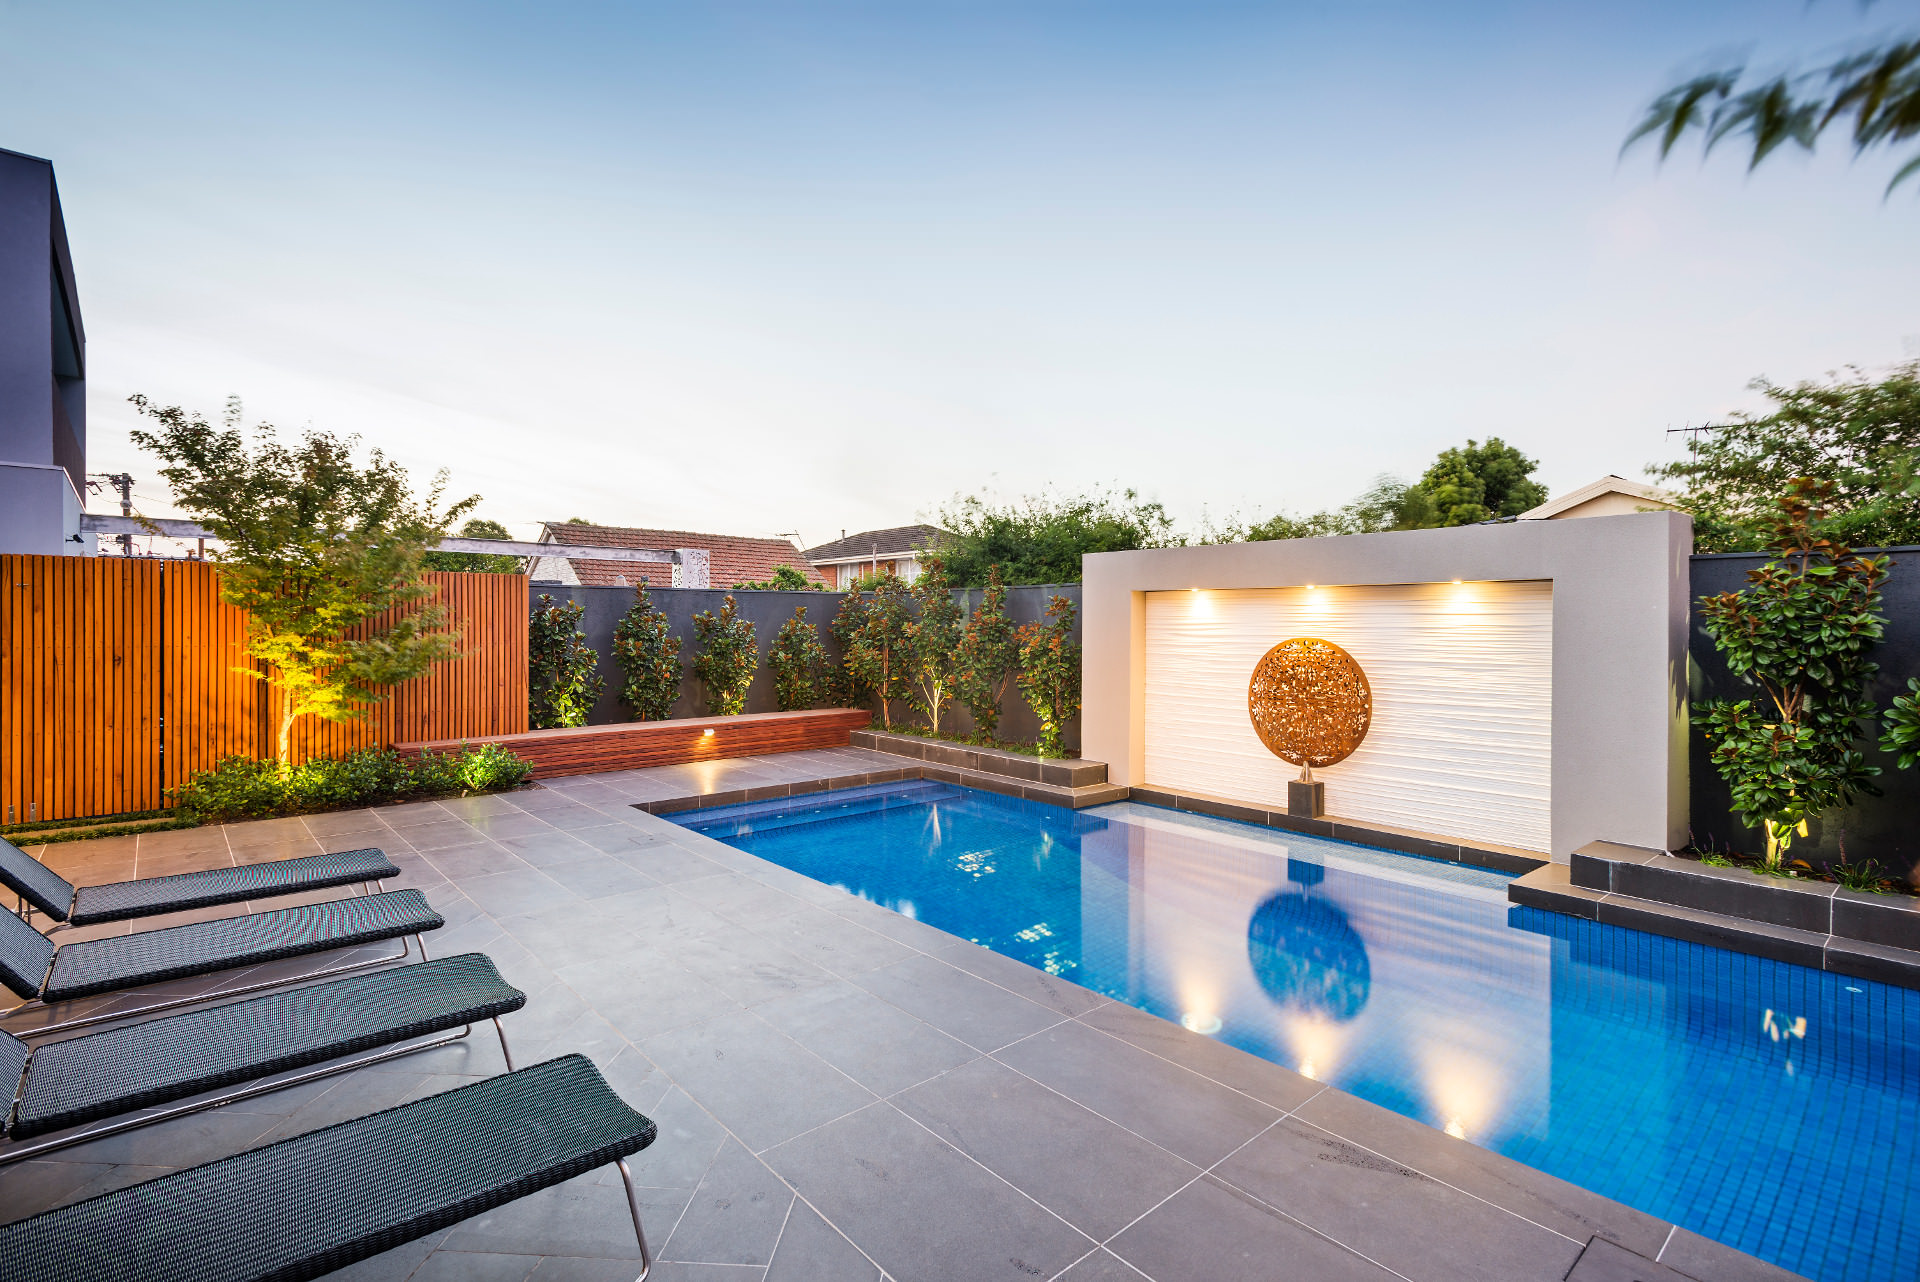 28 pool landscape designs decorating ideas design for Landscape design melbourne